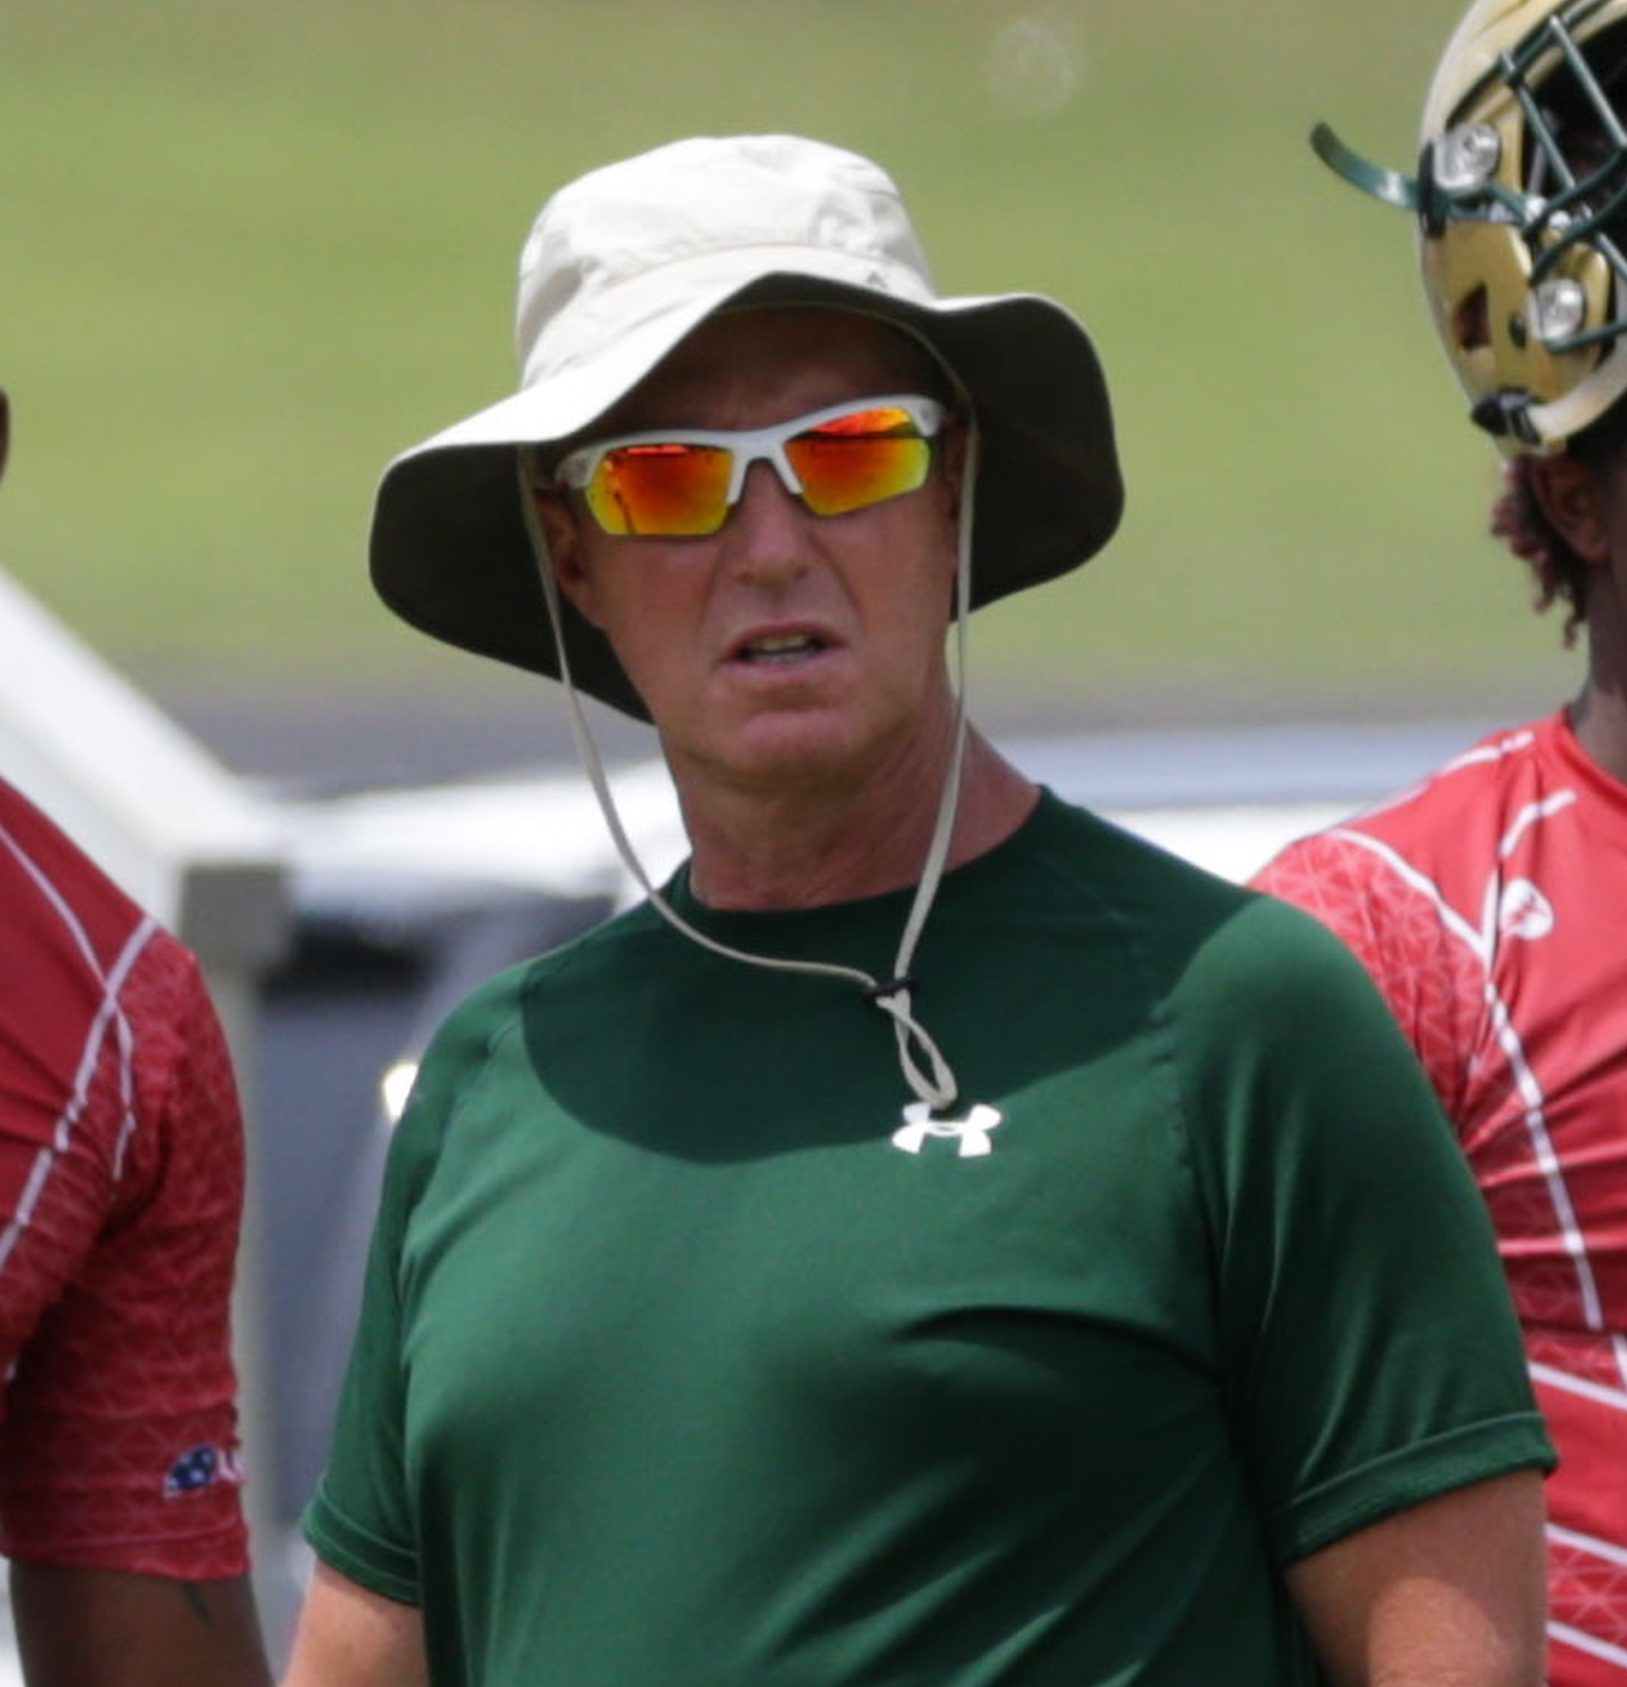 Jul 16, 2016; Hoover, AL, U.S.A -- Grayson head coach Jeff Herron during the USA Football 7on7 National Championship -- Photo by Marvin Gentry USA TODAY Sports Images, Gannett ORG XMIT: US 135185 7on7 7/15/2016 [Via MerlinFTP Drop]